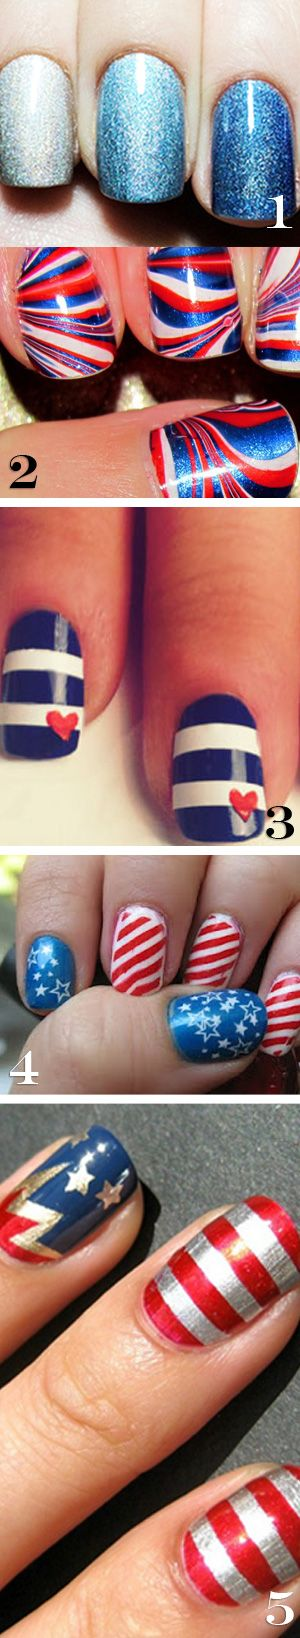 Patriotic Manicure: 4Th Of July Nails, Nail Polish, Nail Designs, Nailss, Fourth Of July Nails, Red White, Nail Ideas, Nail Art, Patriotic Manicure